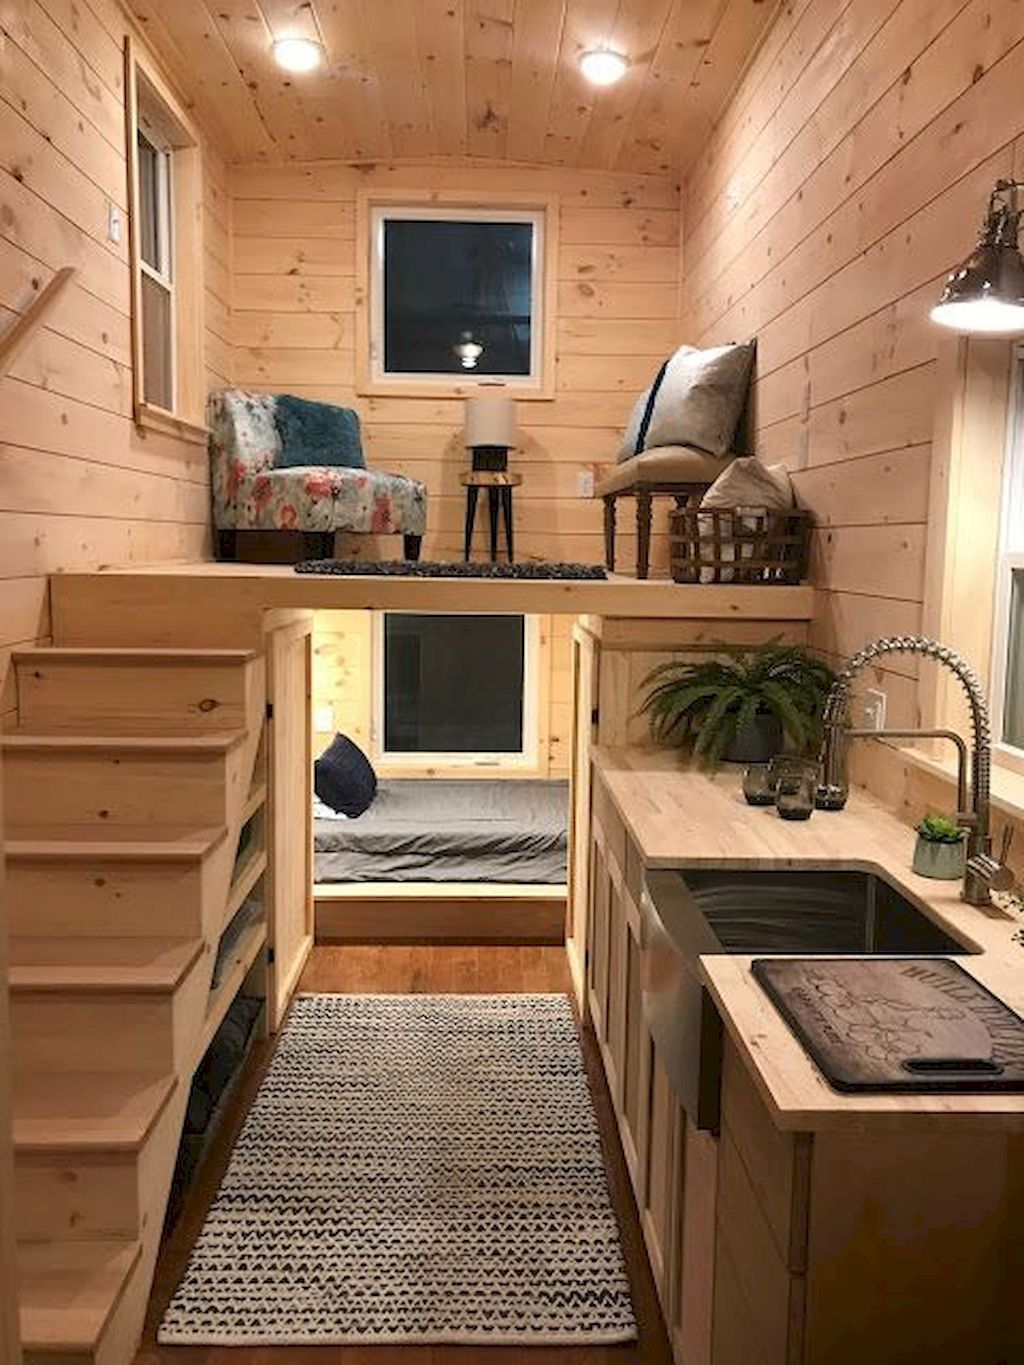 49 Cool Tiny House Design Ideas To Inspire You Tiny House